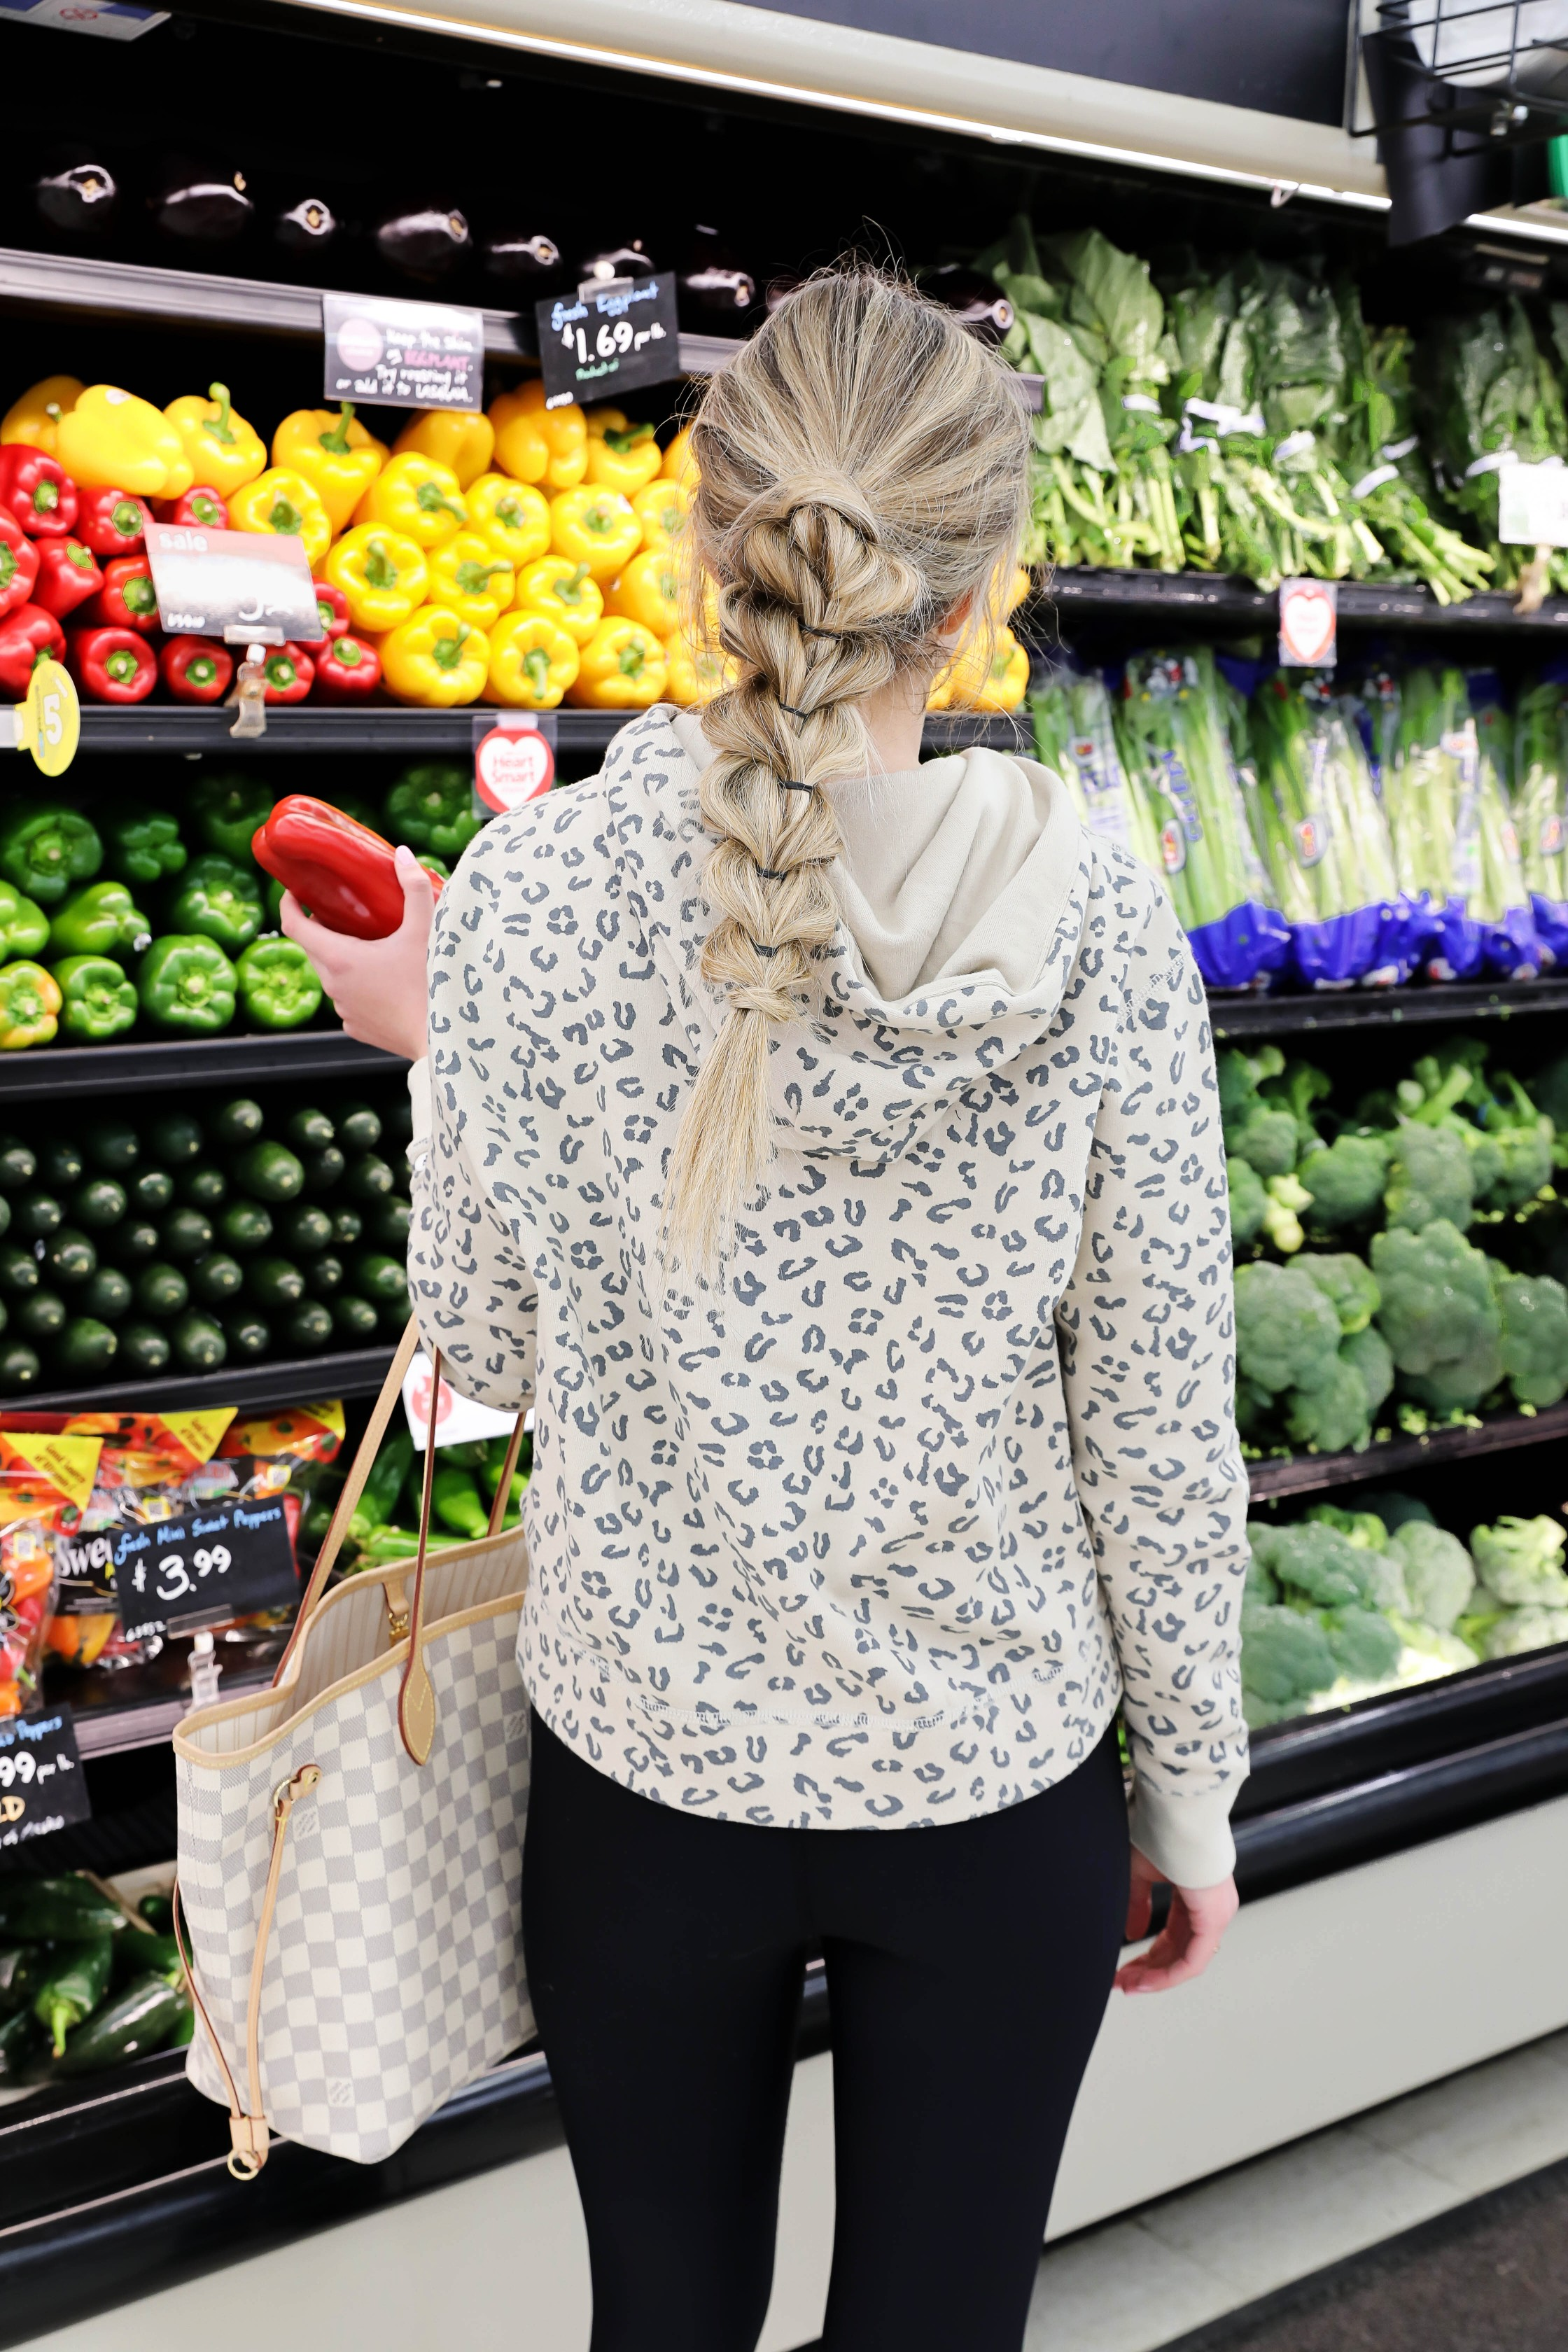 What I eat in a day! Healthy and dairy free meal ideas for girls on the go! I did the cutest bubble braid hairstyle today! I love going to the grocery store. For a snack I went to t.loft in Leawood, Kansas! Details on lifestyle and fashion blog daily dose of charm by lauren lindmark